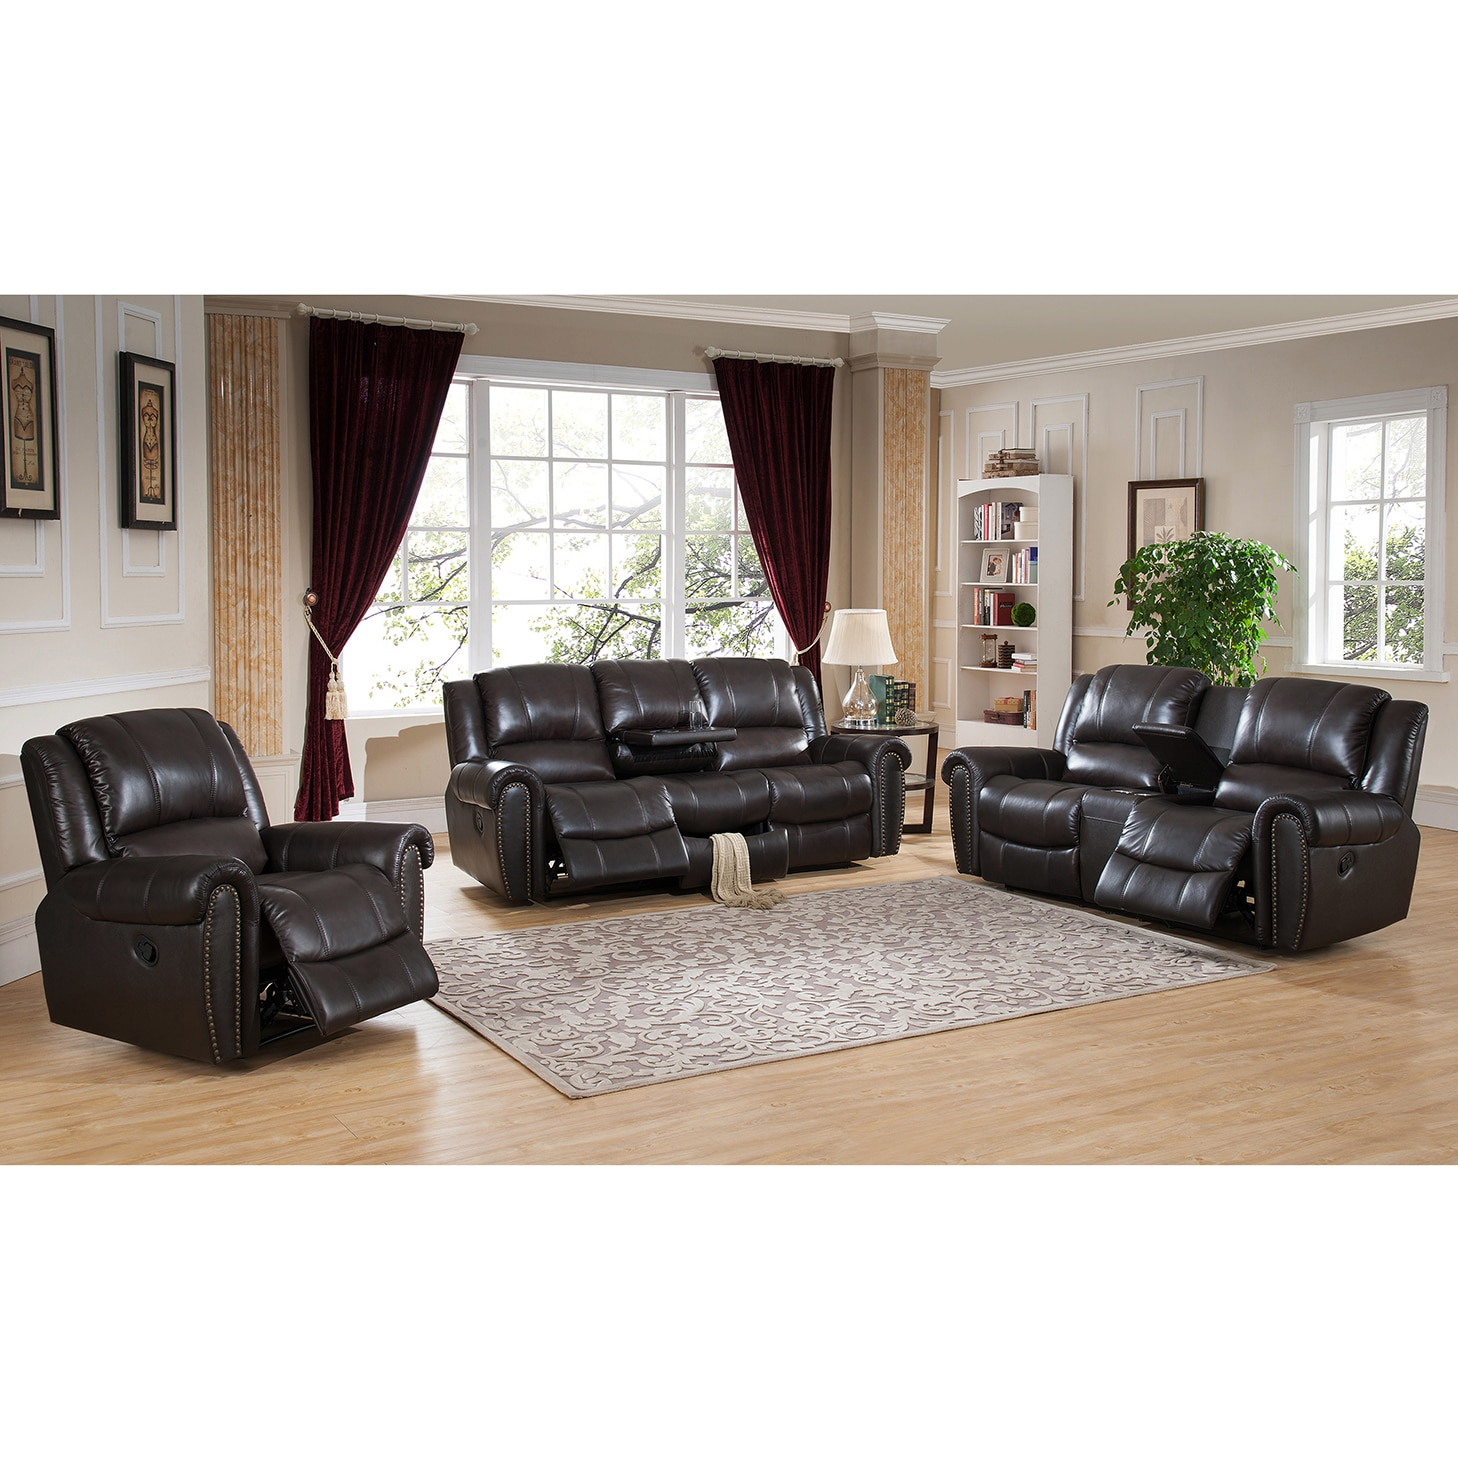 Charlotte Top Grain Leather Reclining Sofa With Memory Foam Storage Drawer And Pull Out Tray Table Free Shipping Today 11628082